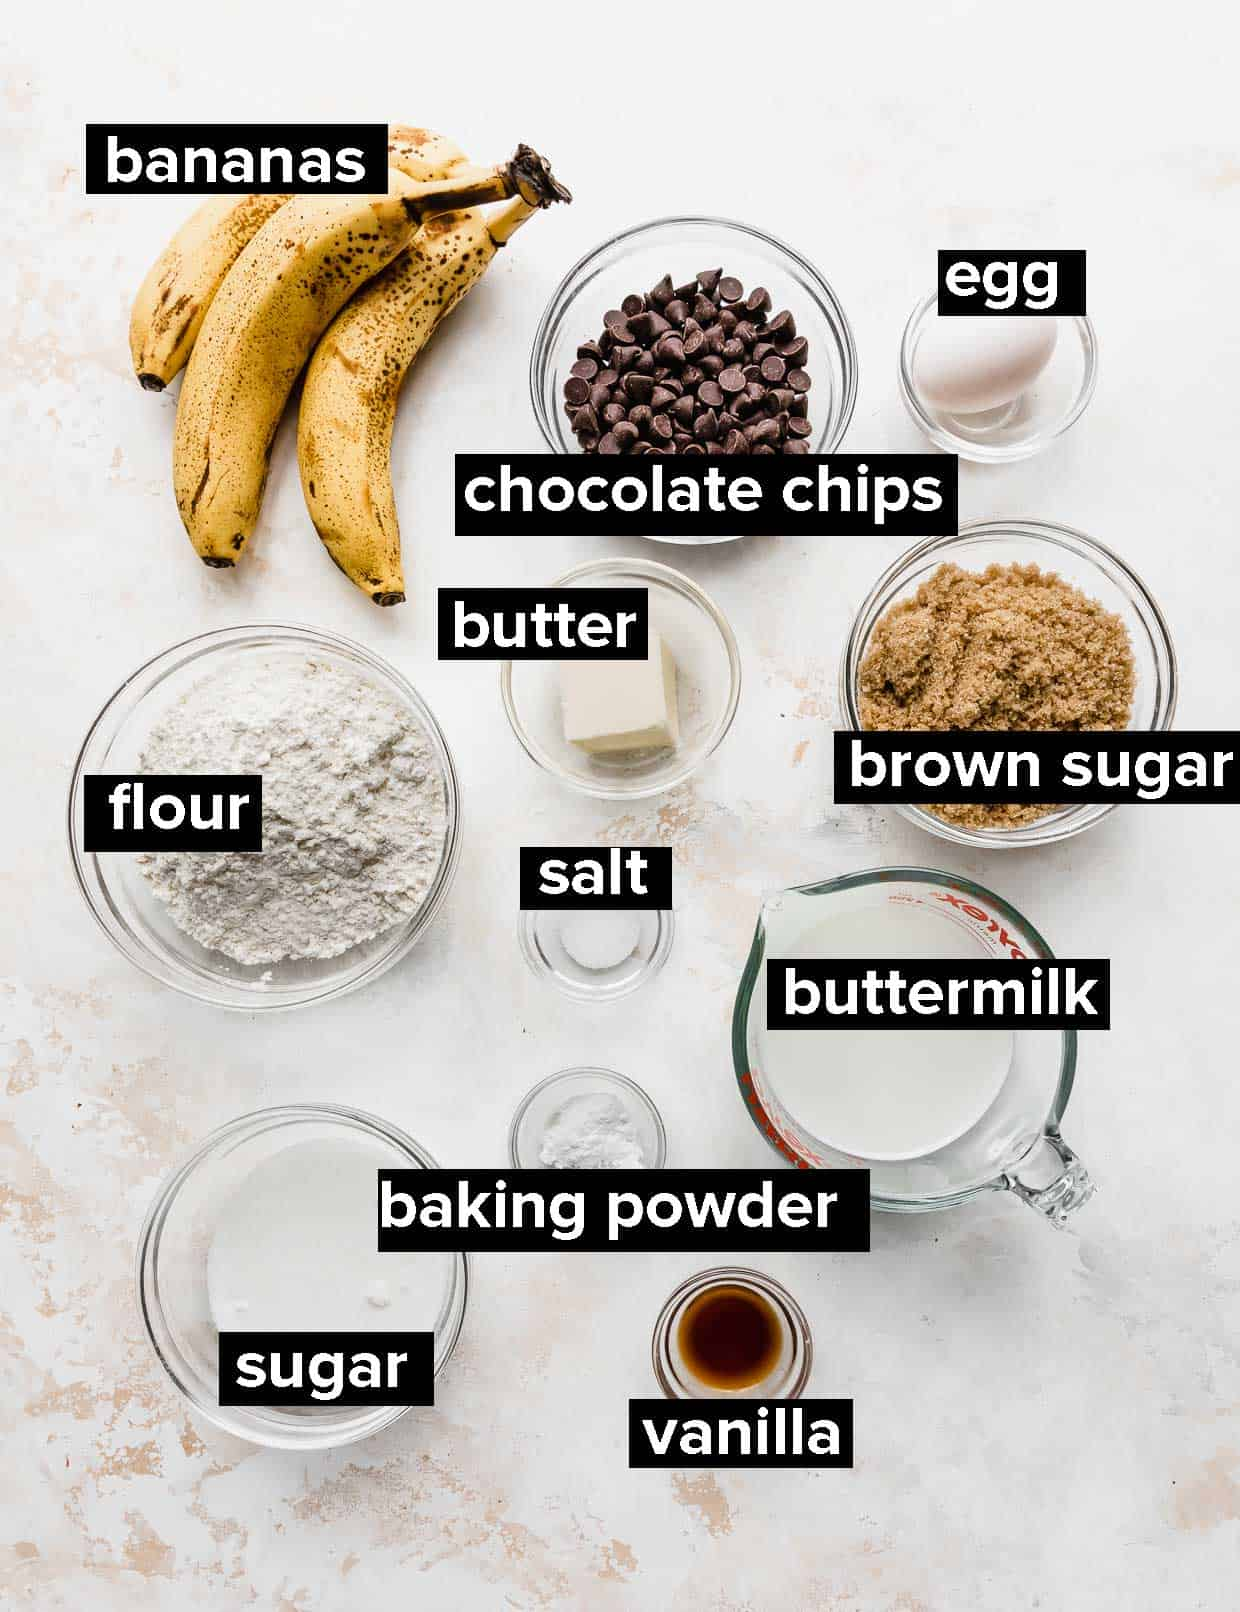 Ingredients used to make buttermilk banana chocolate chip muffins.